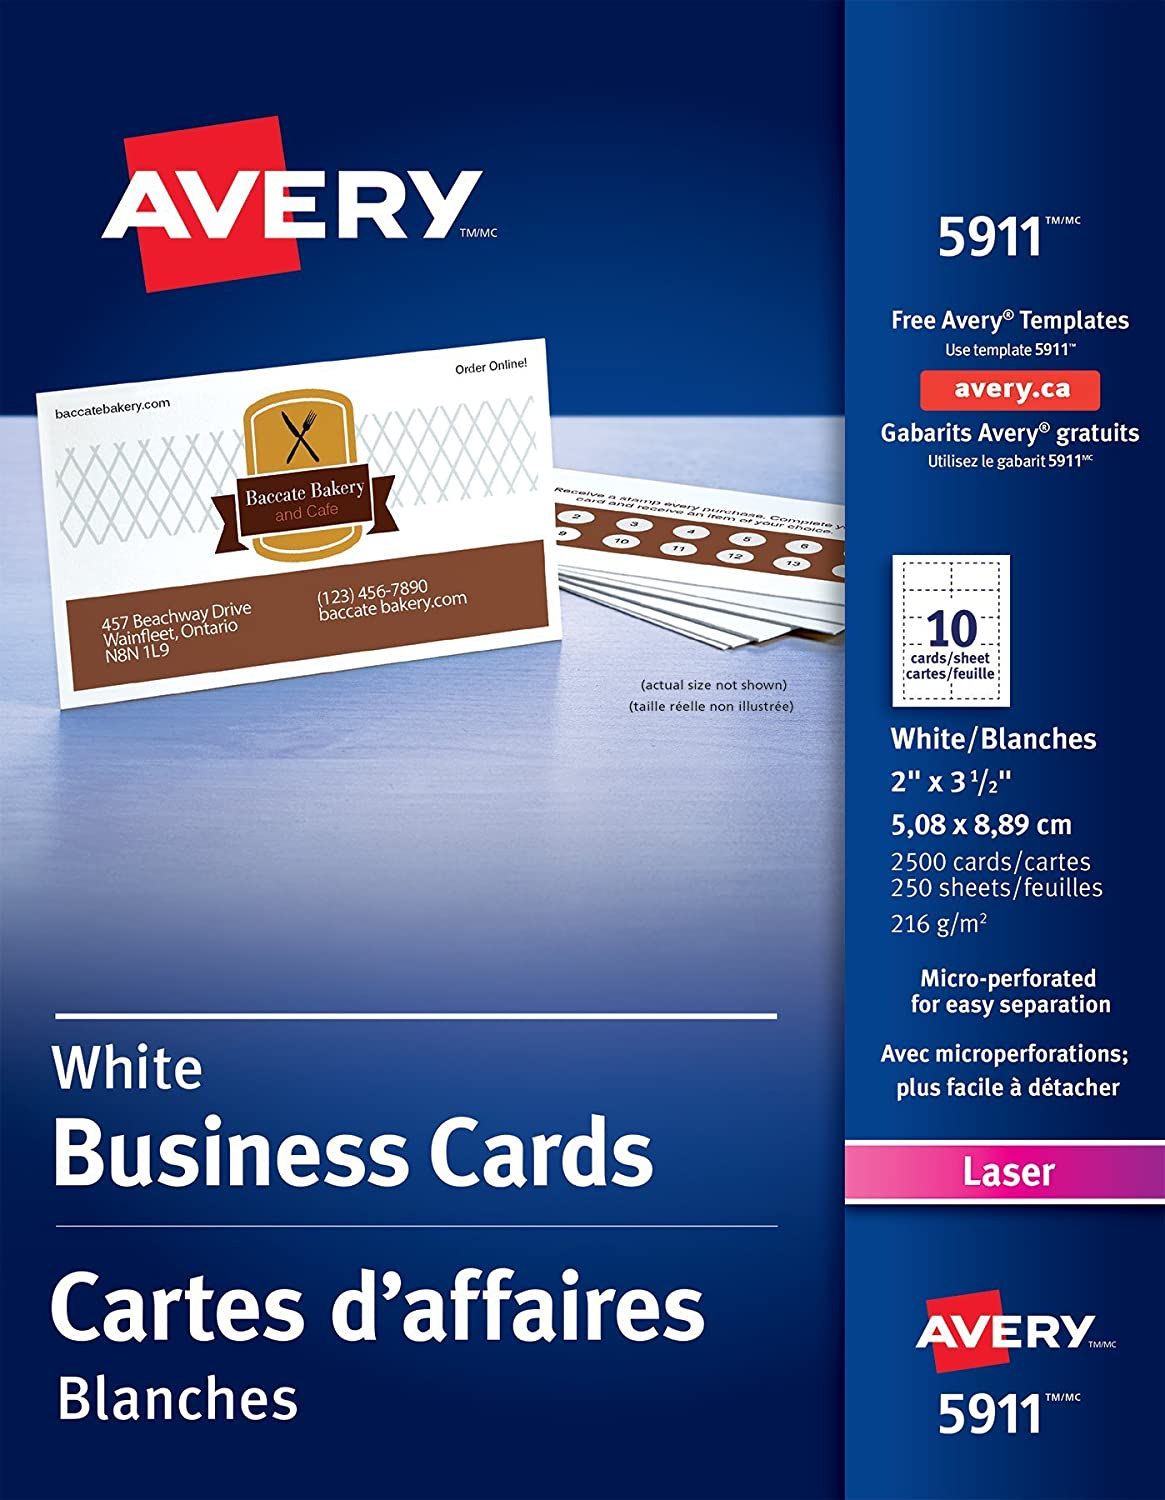 Avery Perforated Business Cards for Laser Printers, 2 x 3-1/2, White, Uncoated, 2500 Pack, Rectangle (5911) 2 x 3-1/2 Avery Dennison CA